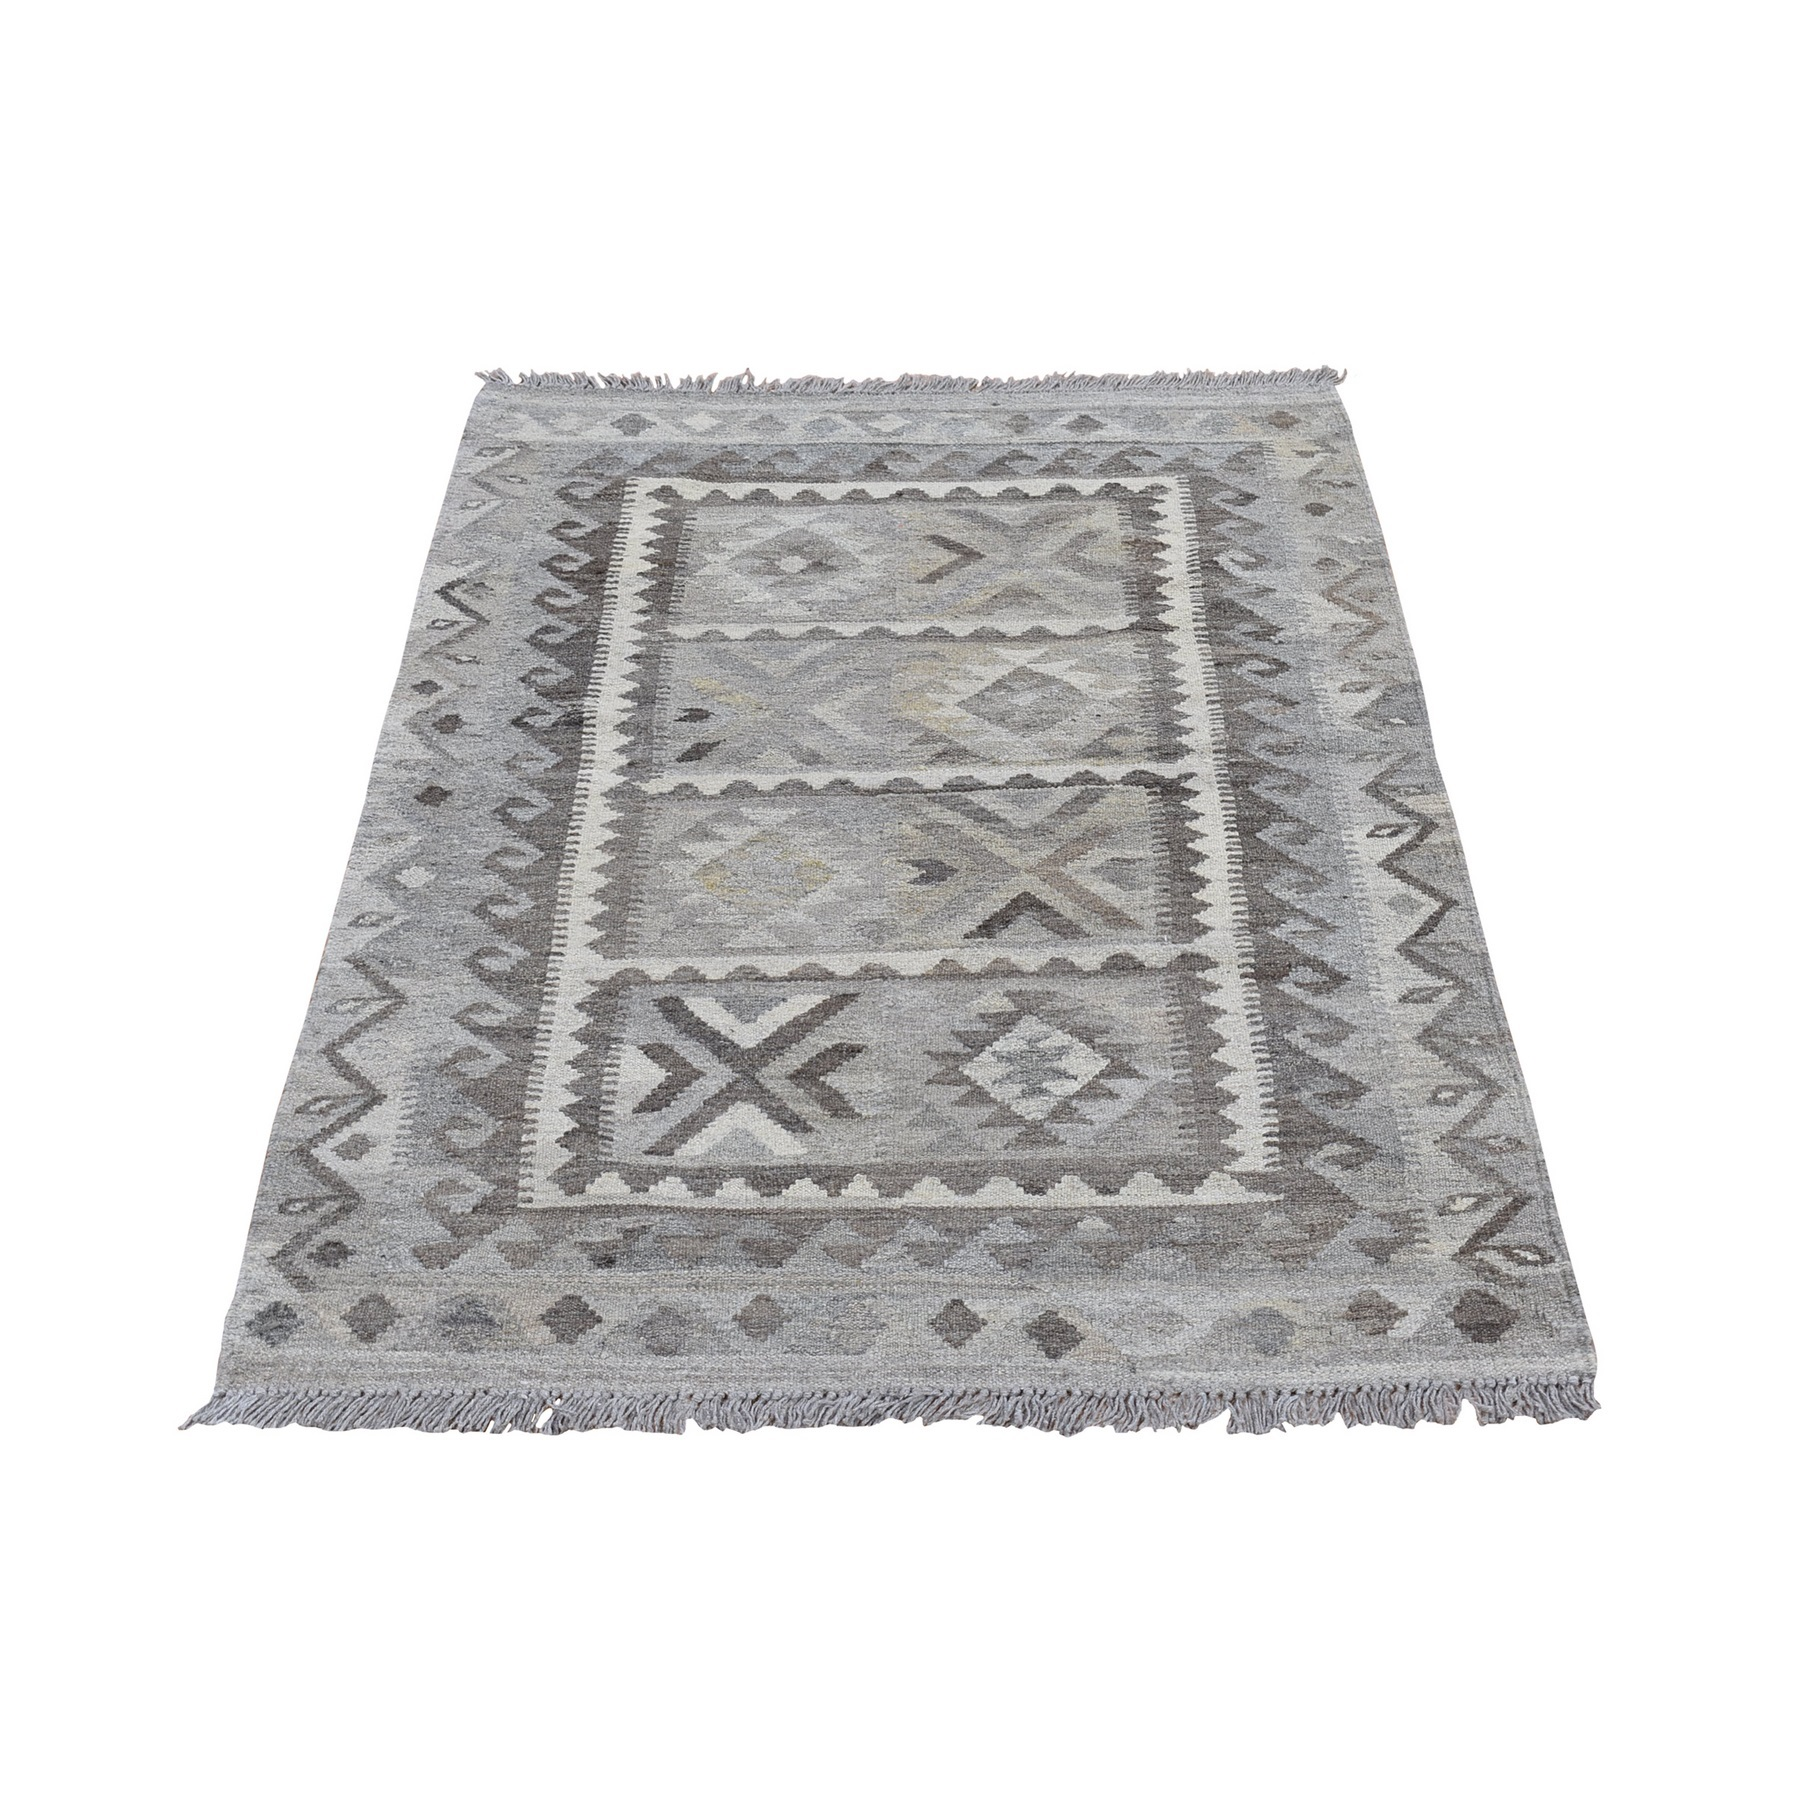 Fine Kilim Collection Hand Woven Grey Rug No: 1132184